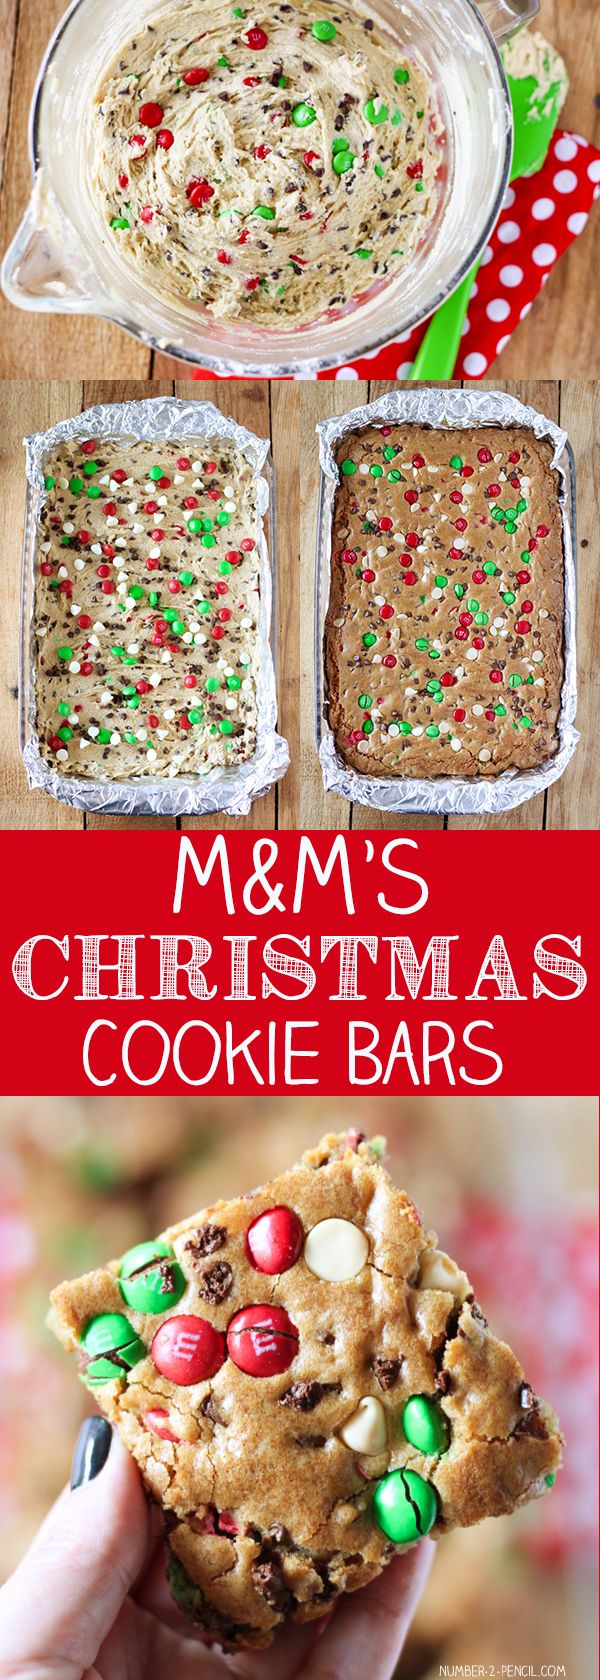 852 best holidays christmas goodies images on pinterest mms christmas cookie bars forumfinder Choice Image